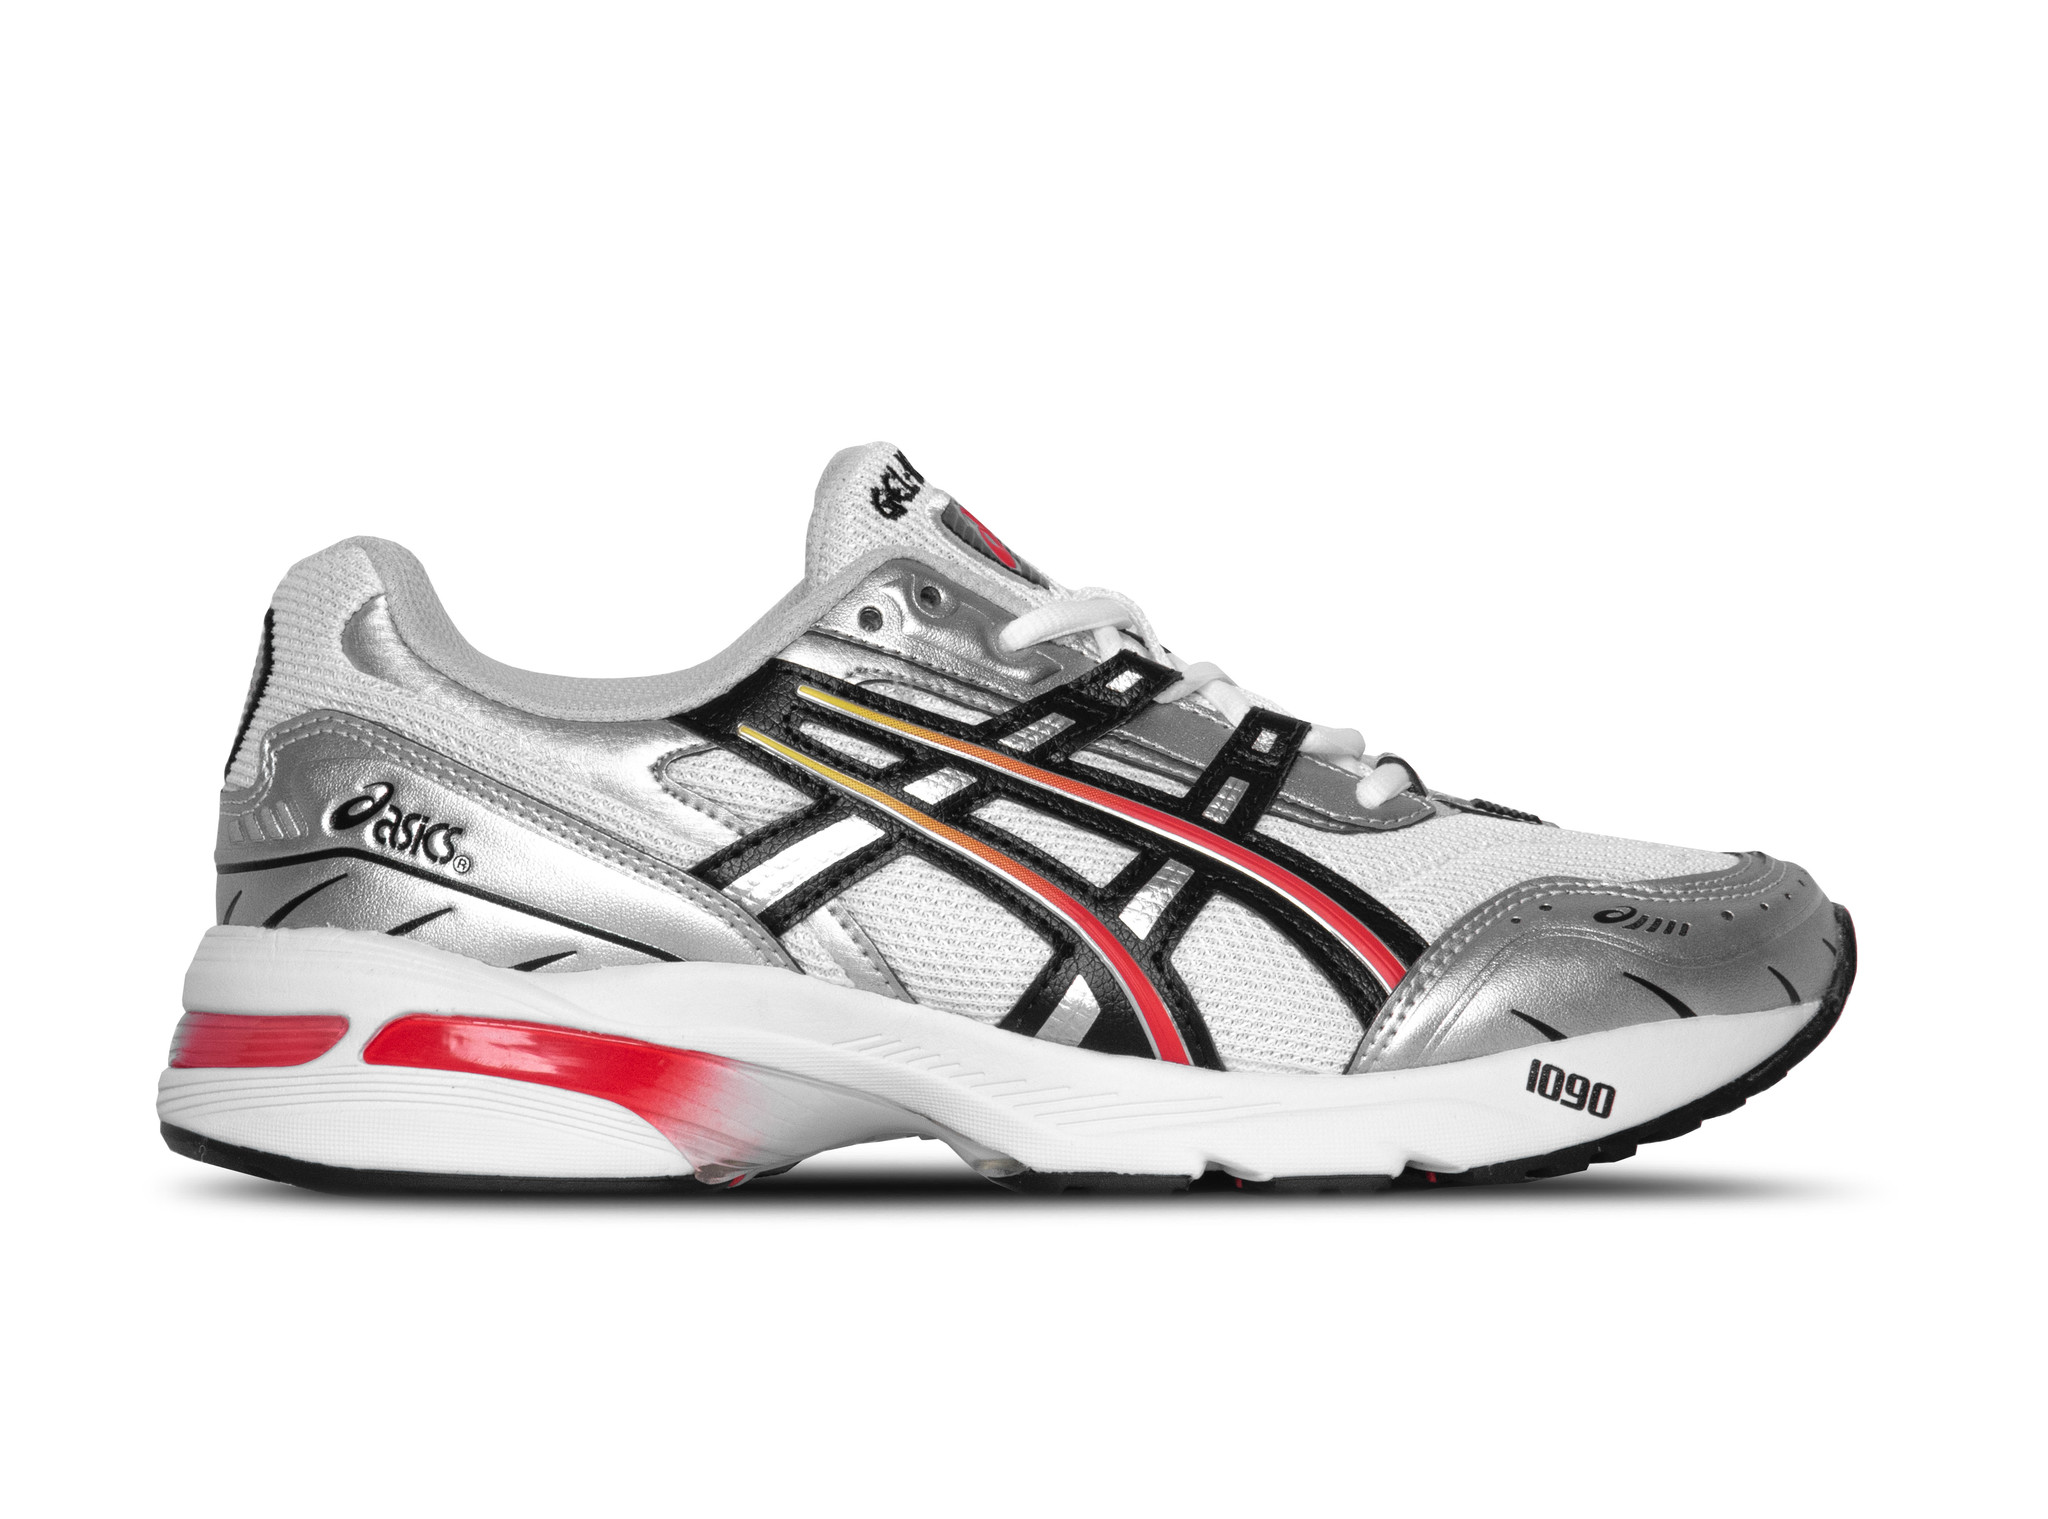 Asics Gel 1090 White Black 1021A285 100 | Bruut Online Shop